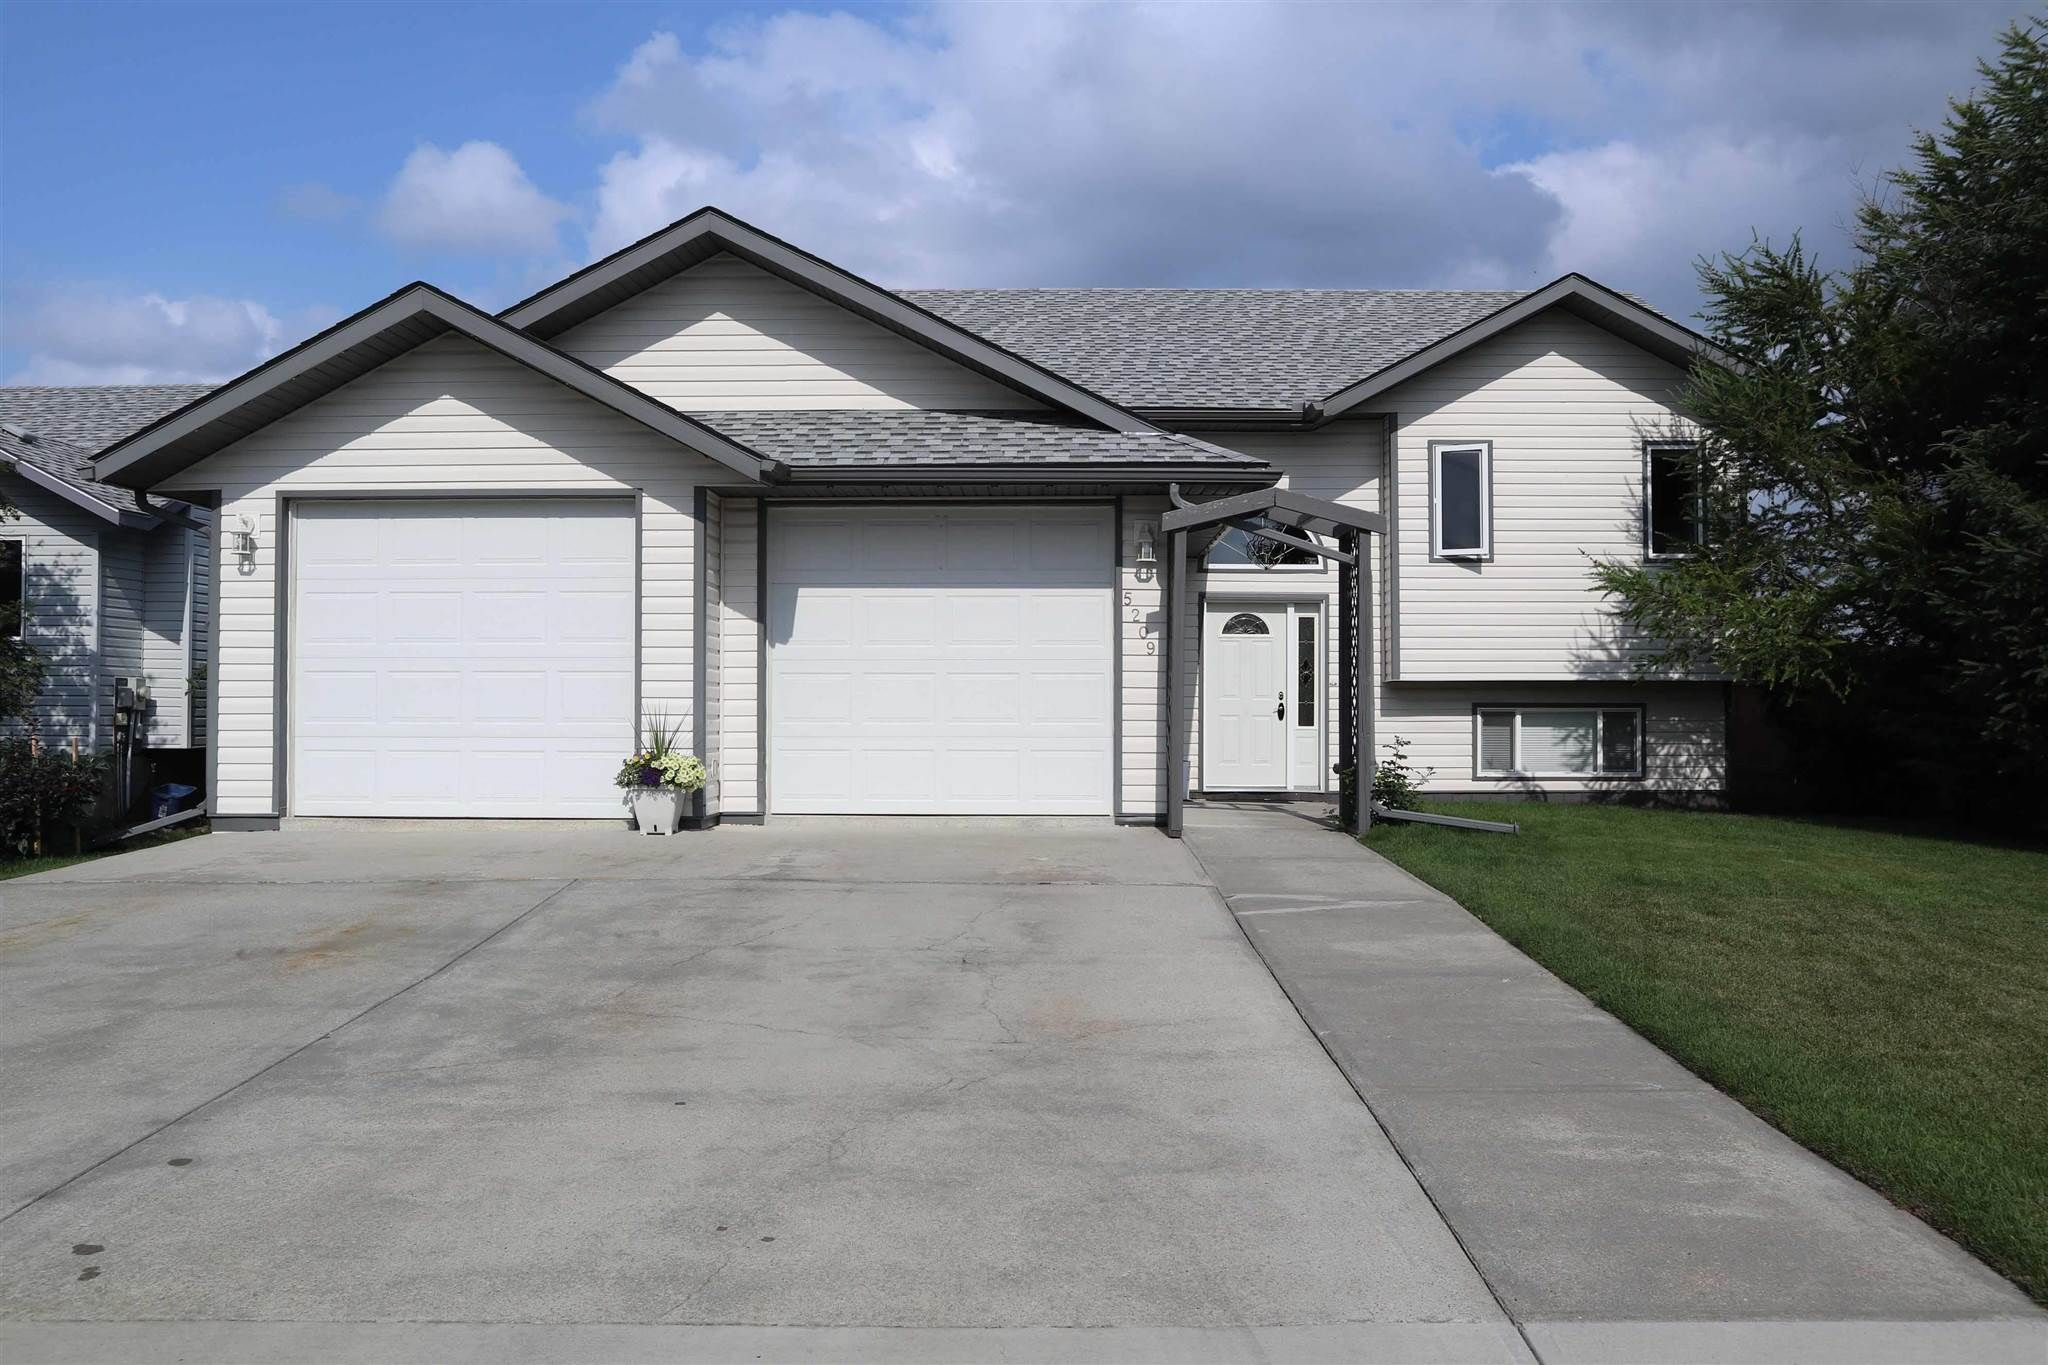 Main Photo: 5209 47 Street: Thorsby House for sale : MLS®# E4255555